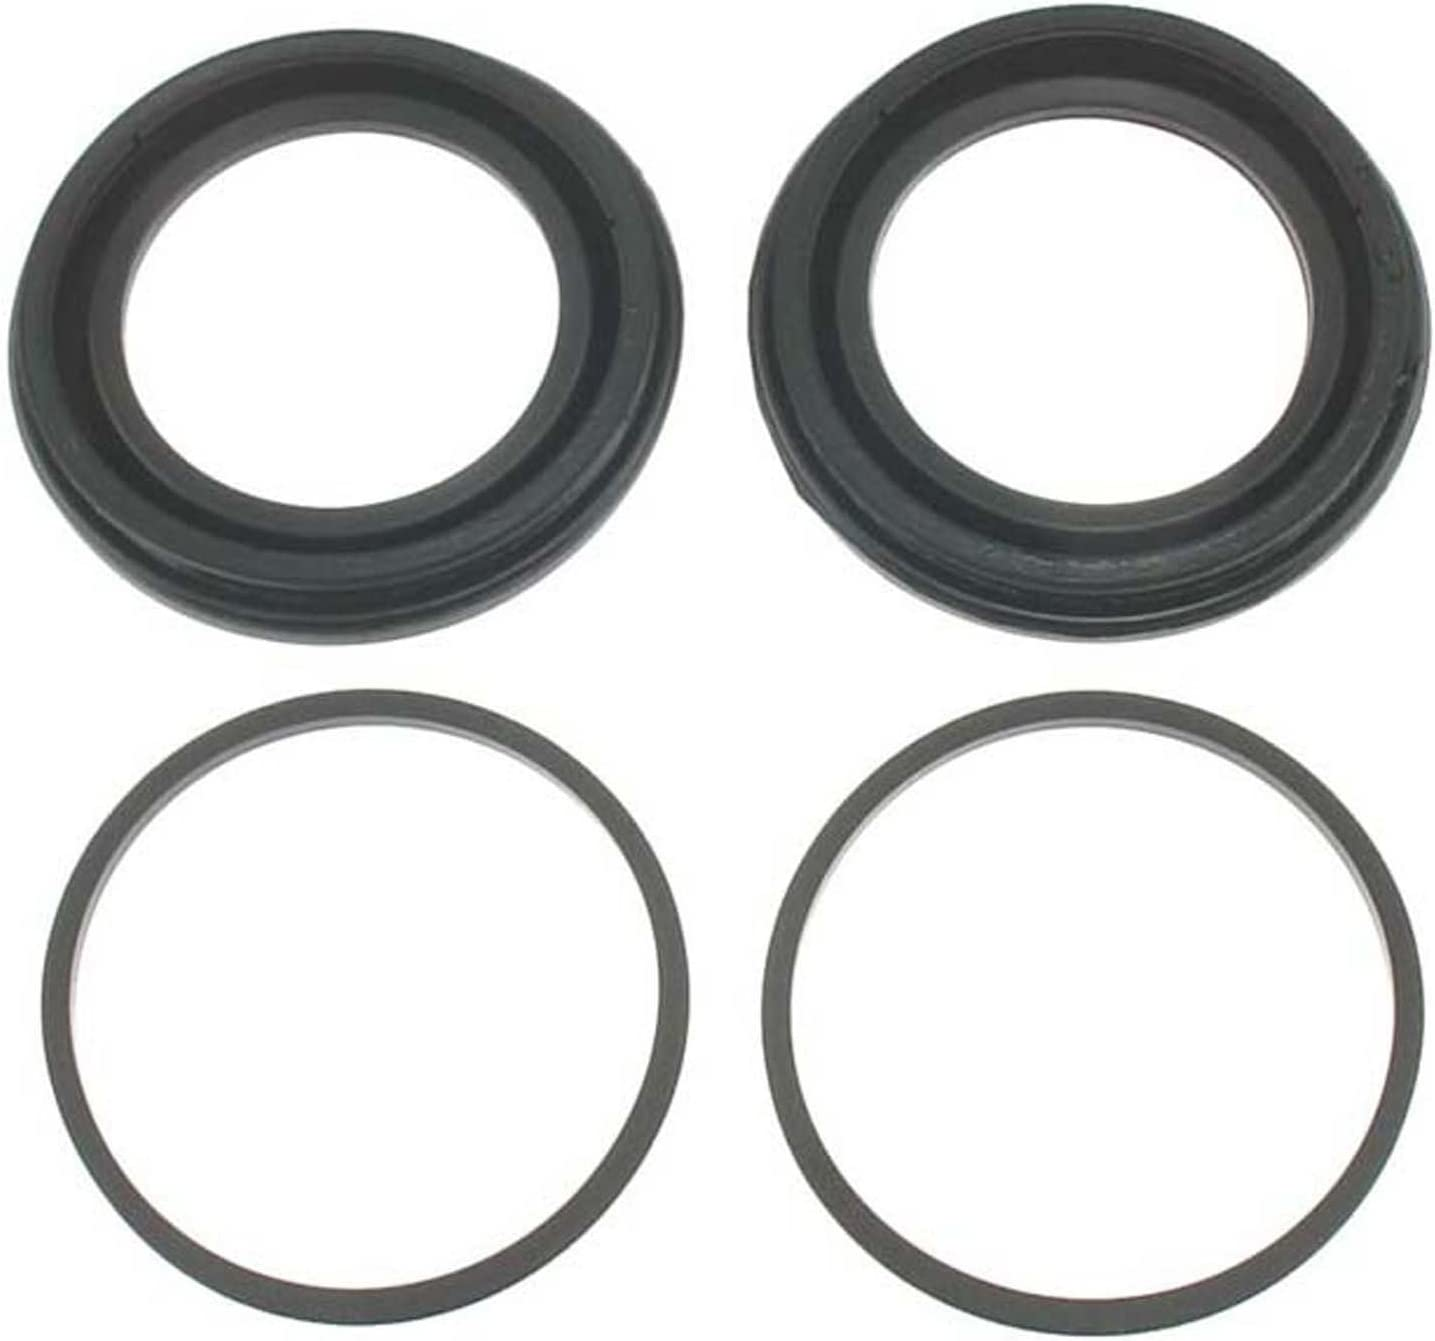 ACDelco 18H100 Professional Front Disc Brake Caliper Boot and Seal Kit with Boots and Seals